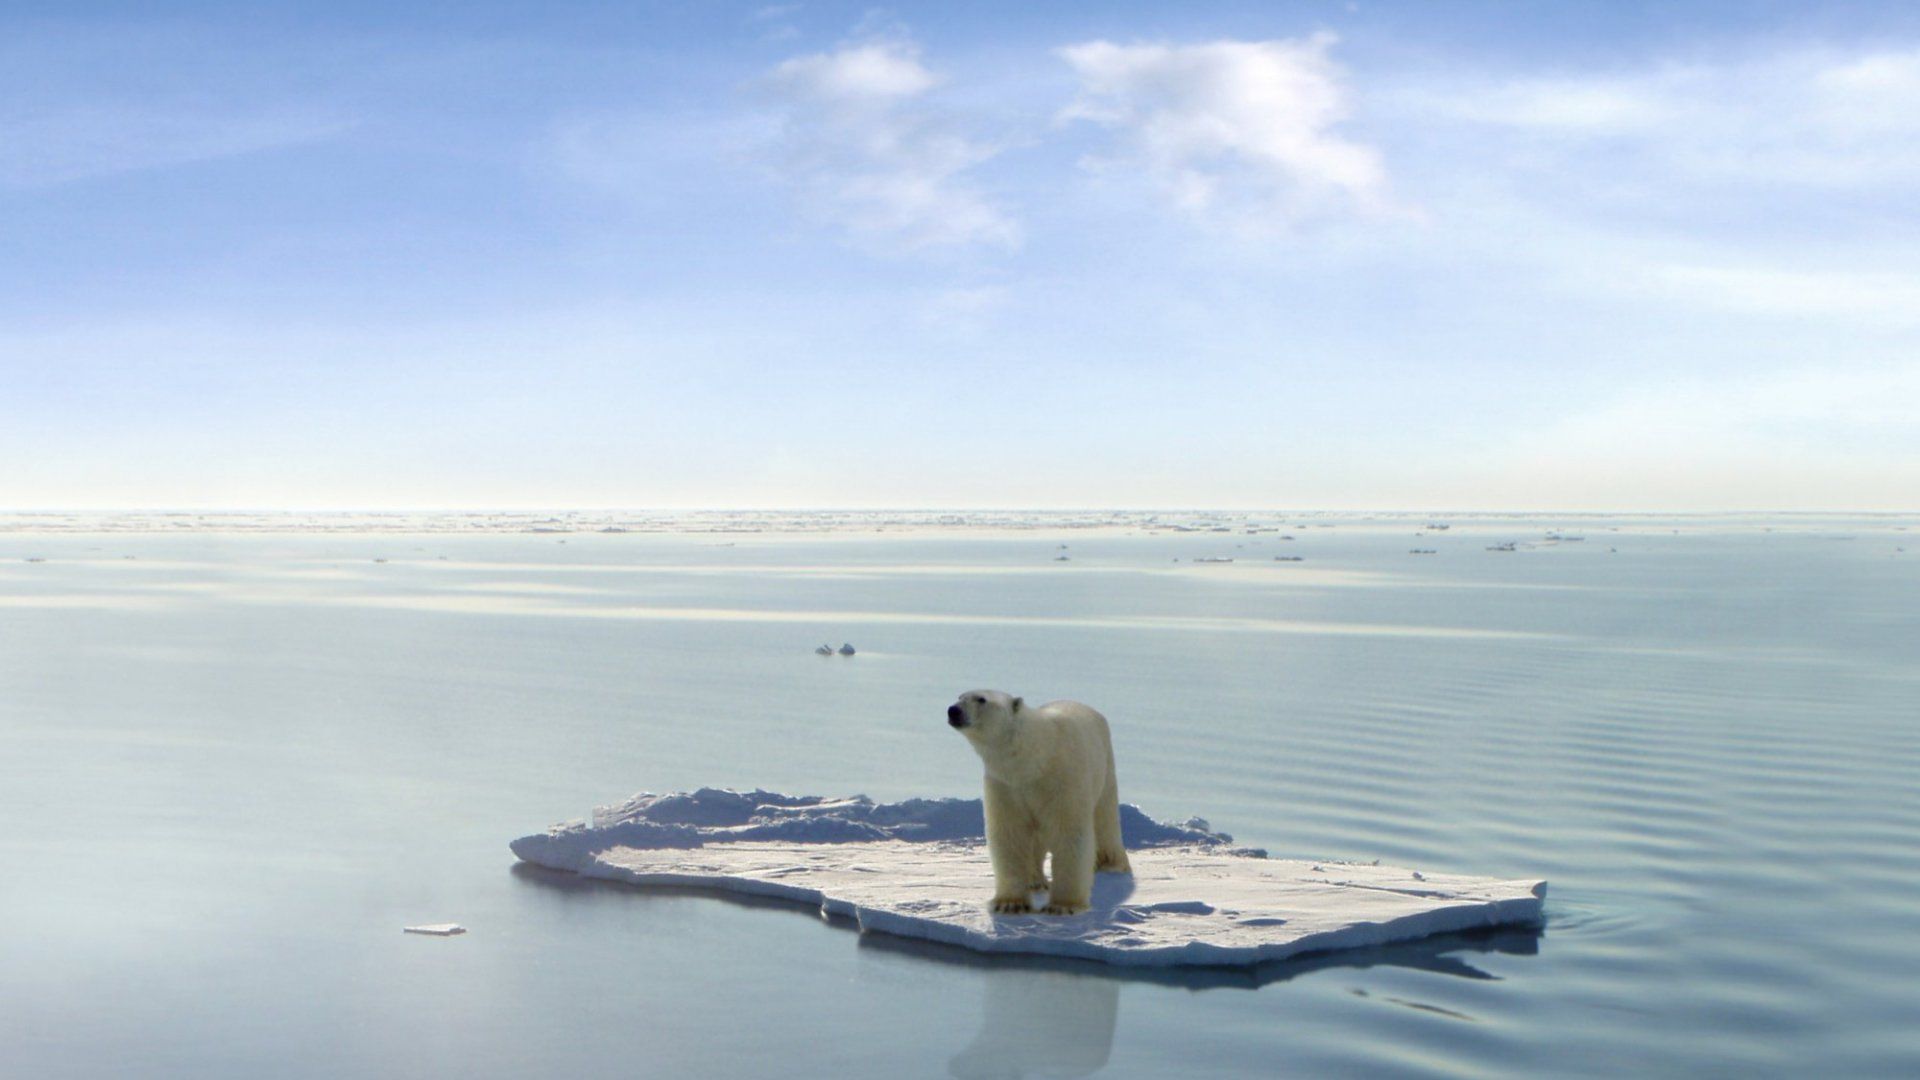 The Case for Curbing Global Warming